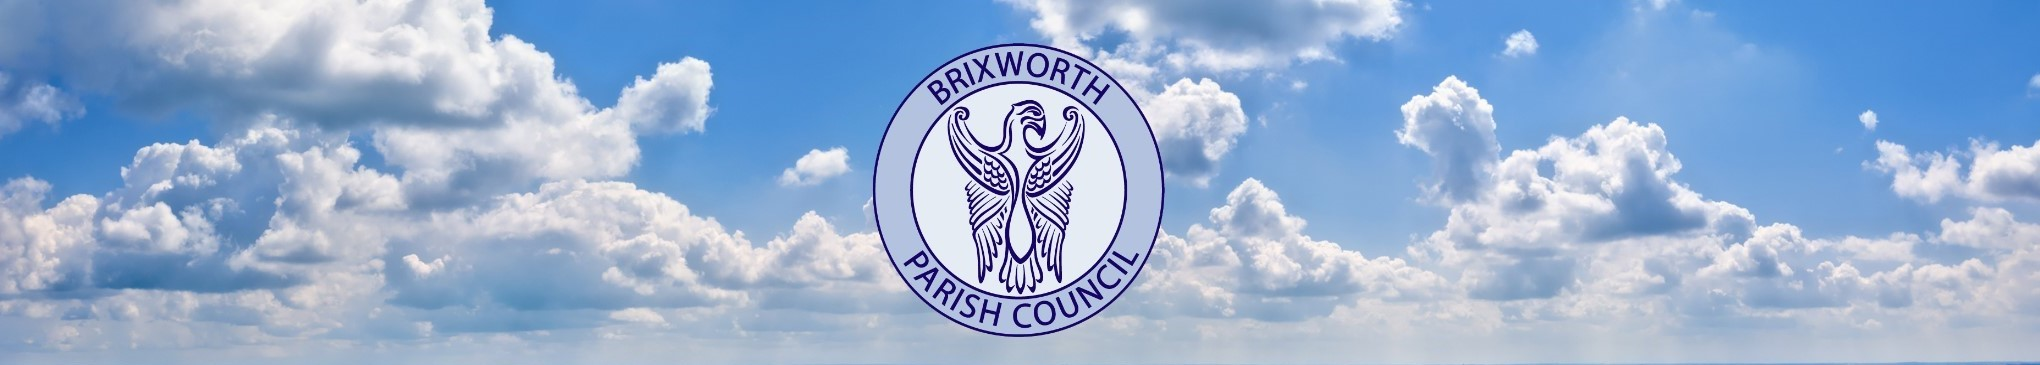 Brixworth Parish Council